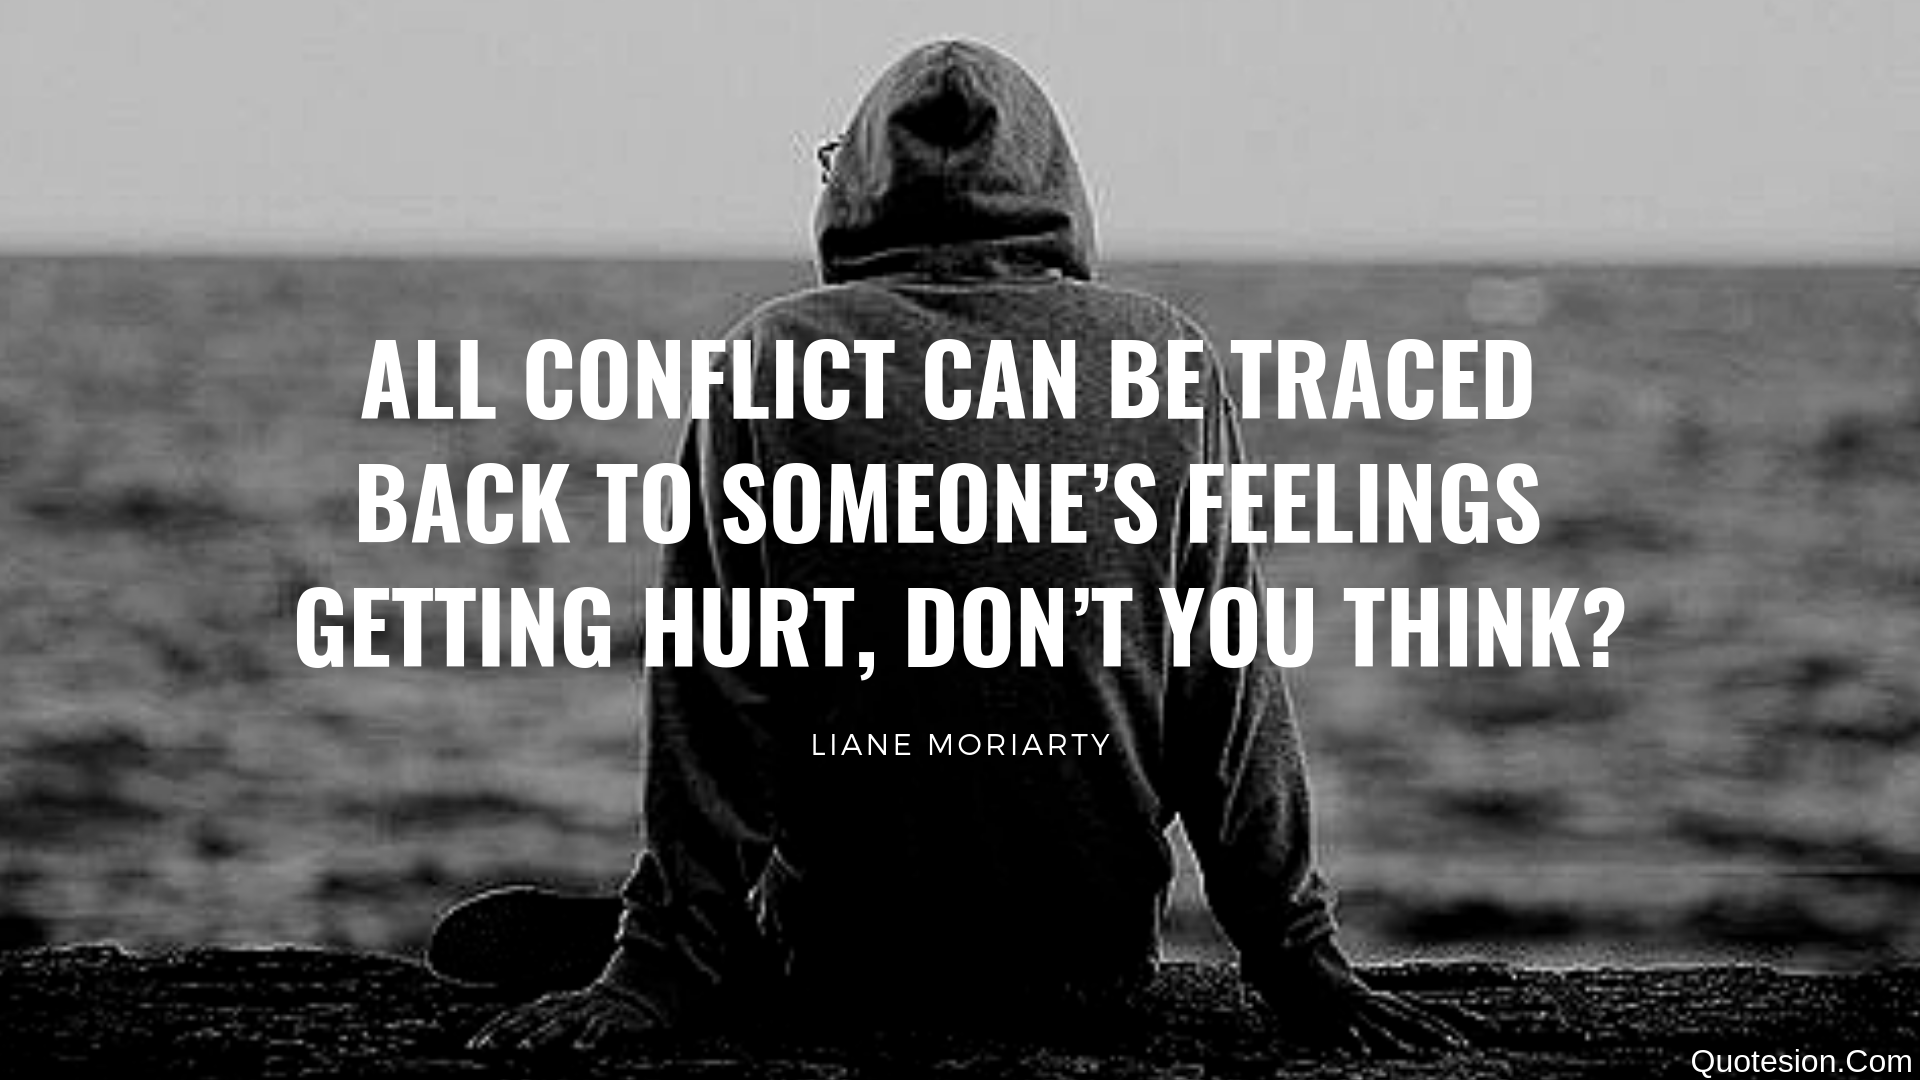 """ALL CONFLICT CAN BE TRACED BACK TO SOMEONE'S FEELINGS GETTING HURT, DON'T YOU THINK?"" -Liane Moriarty- [1920×1080]"